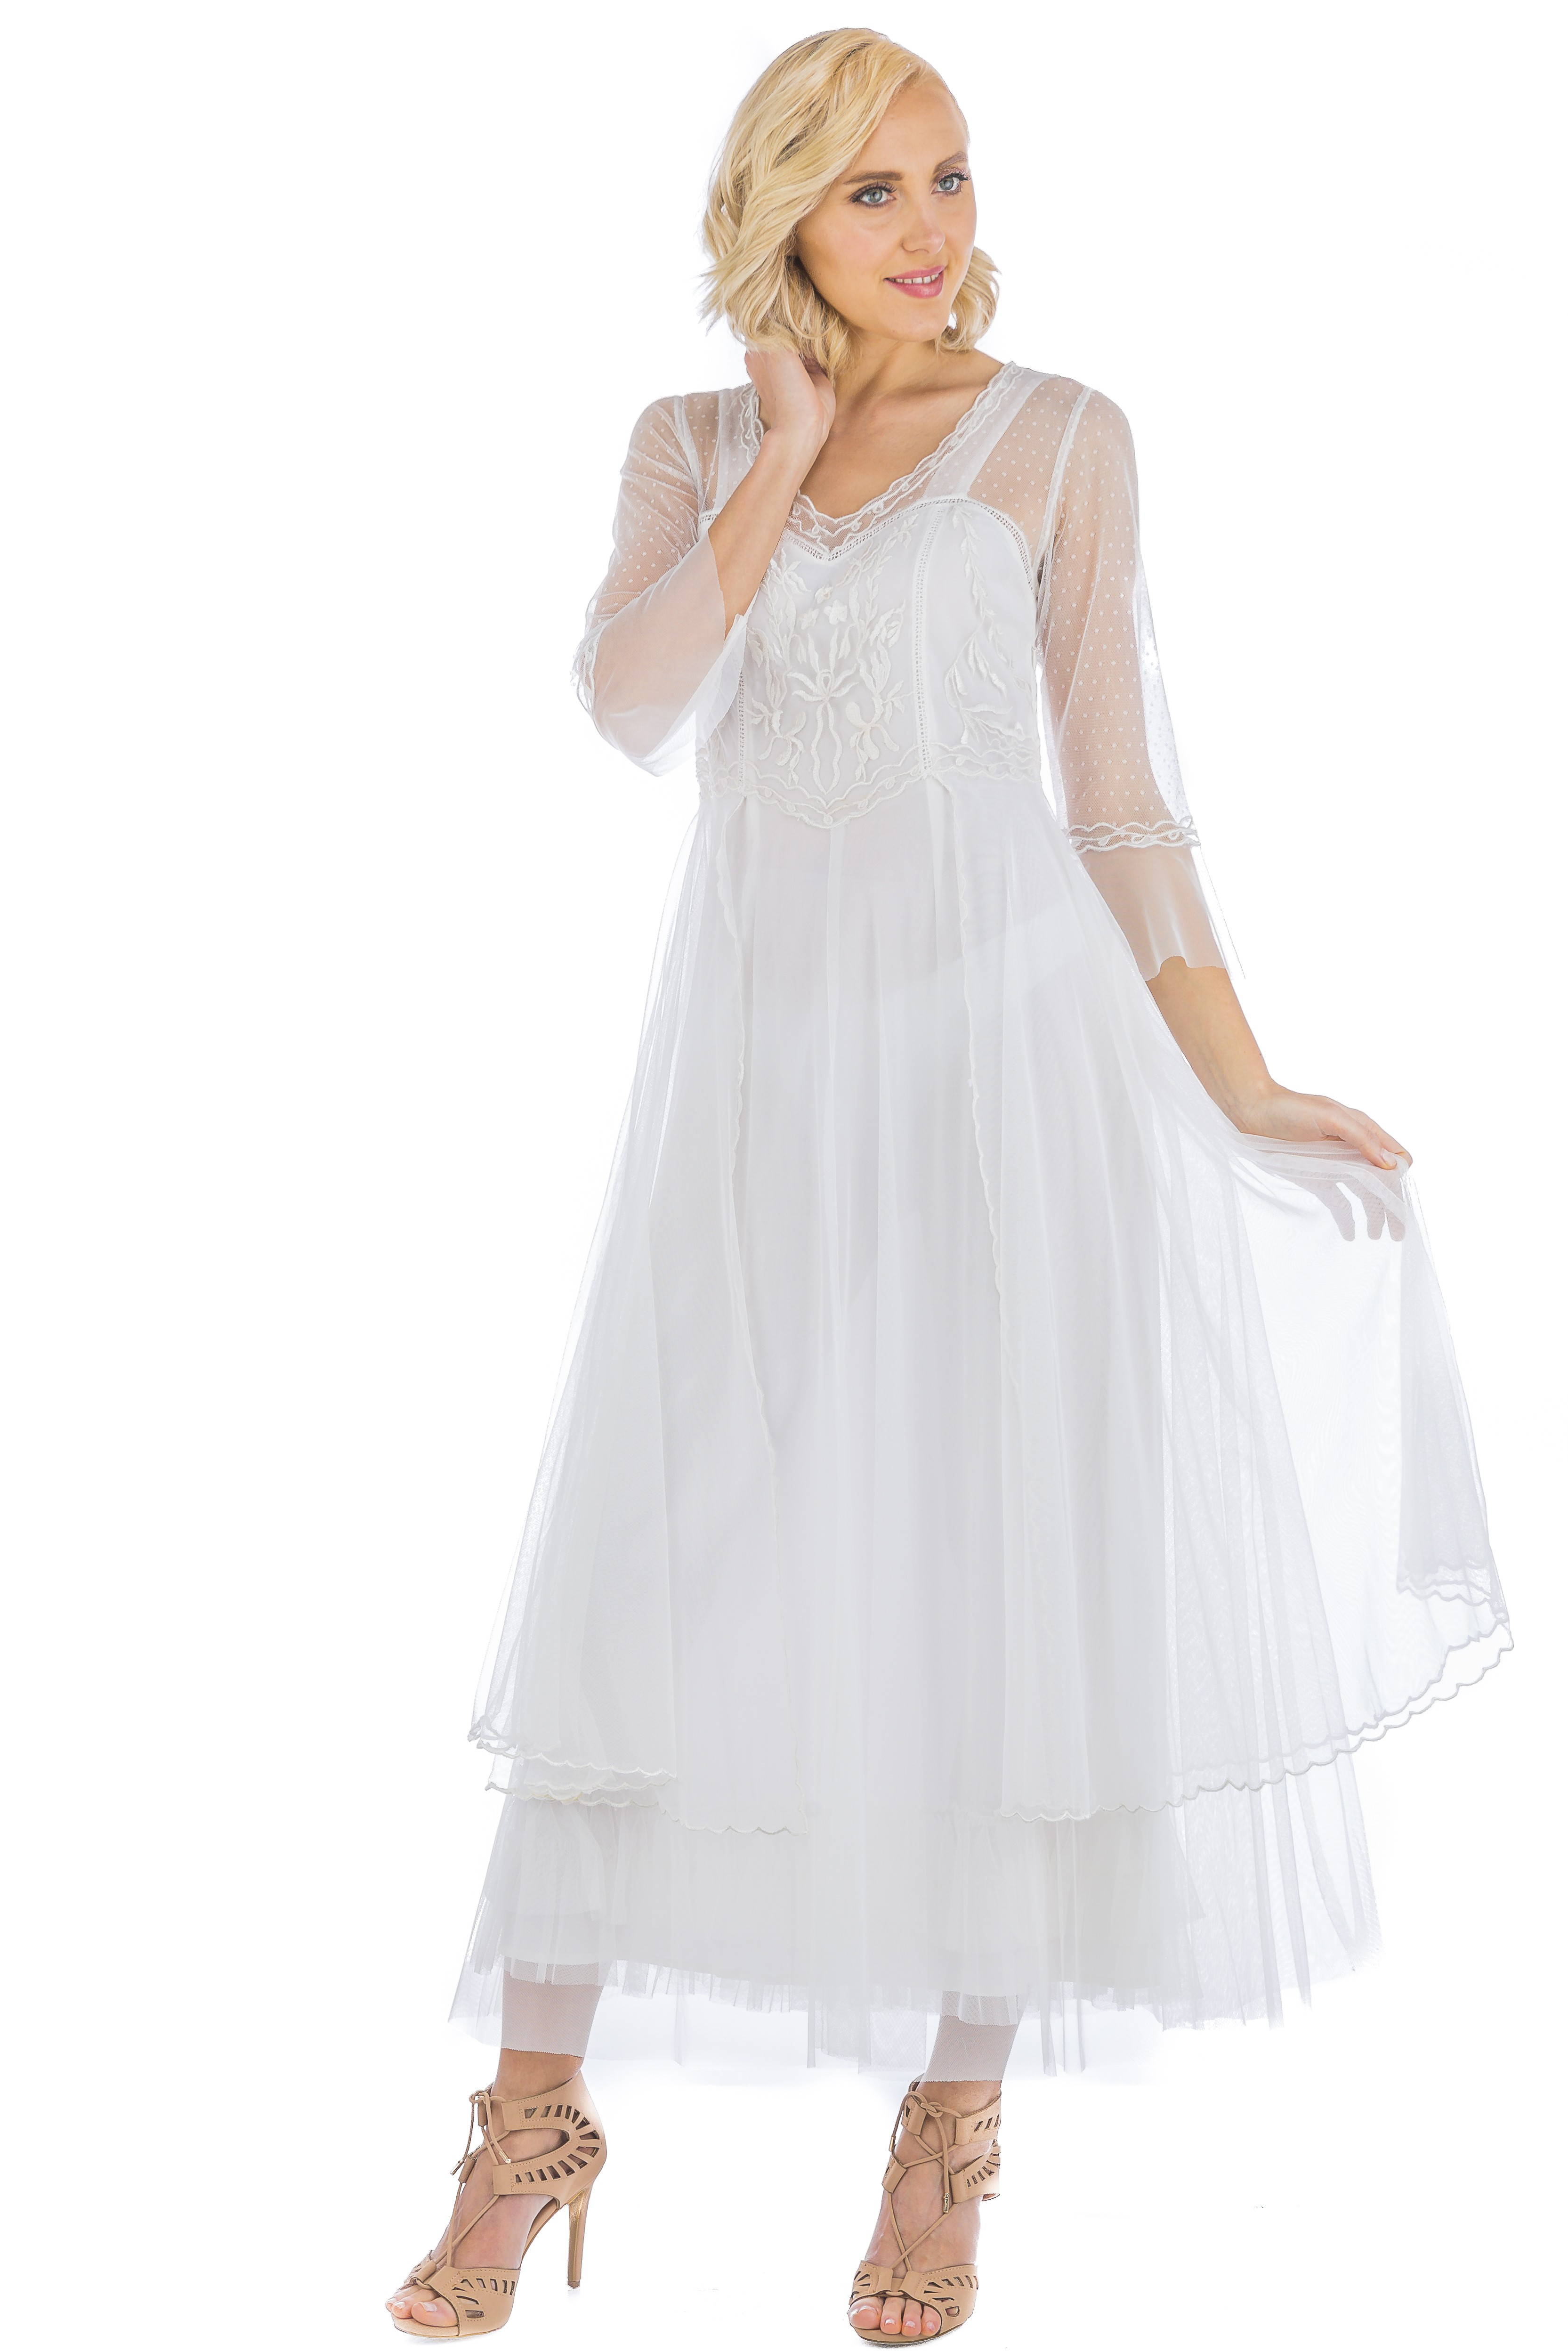 Viviane Vintage Vivian Cl 075 Vintage Style Wedding Gown In Ivory By Nataya